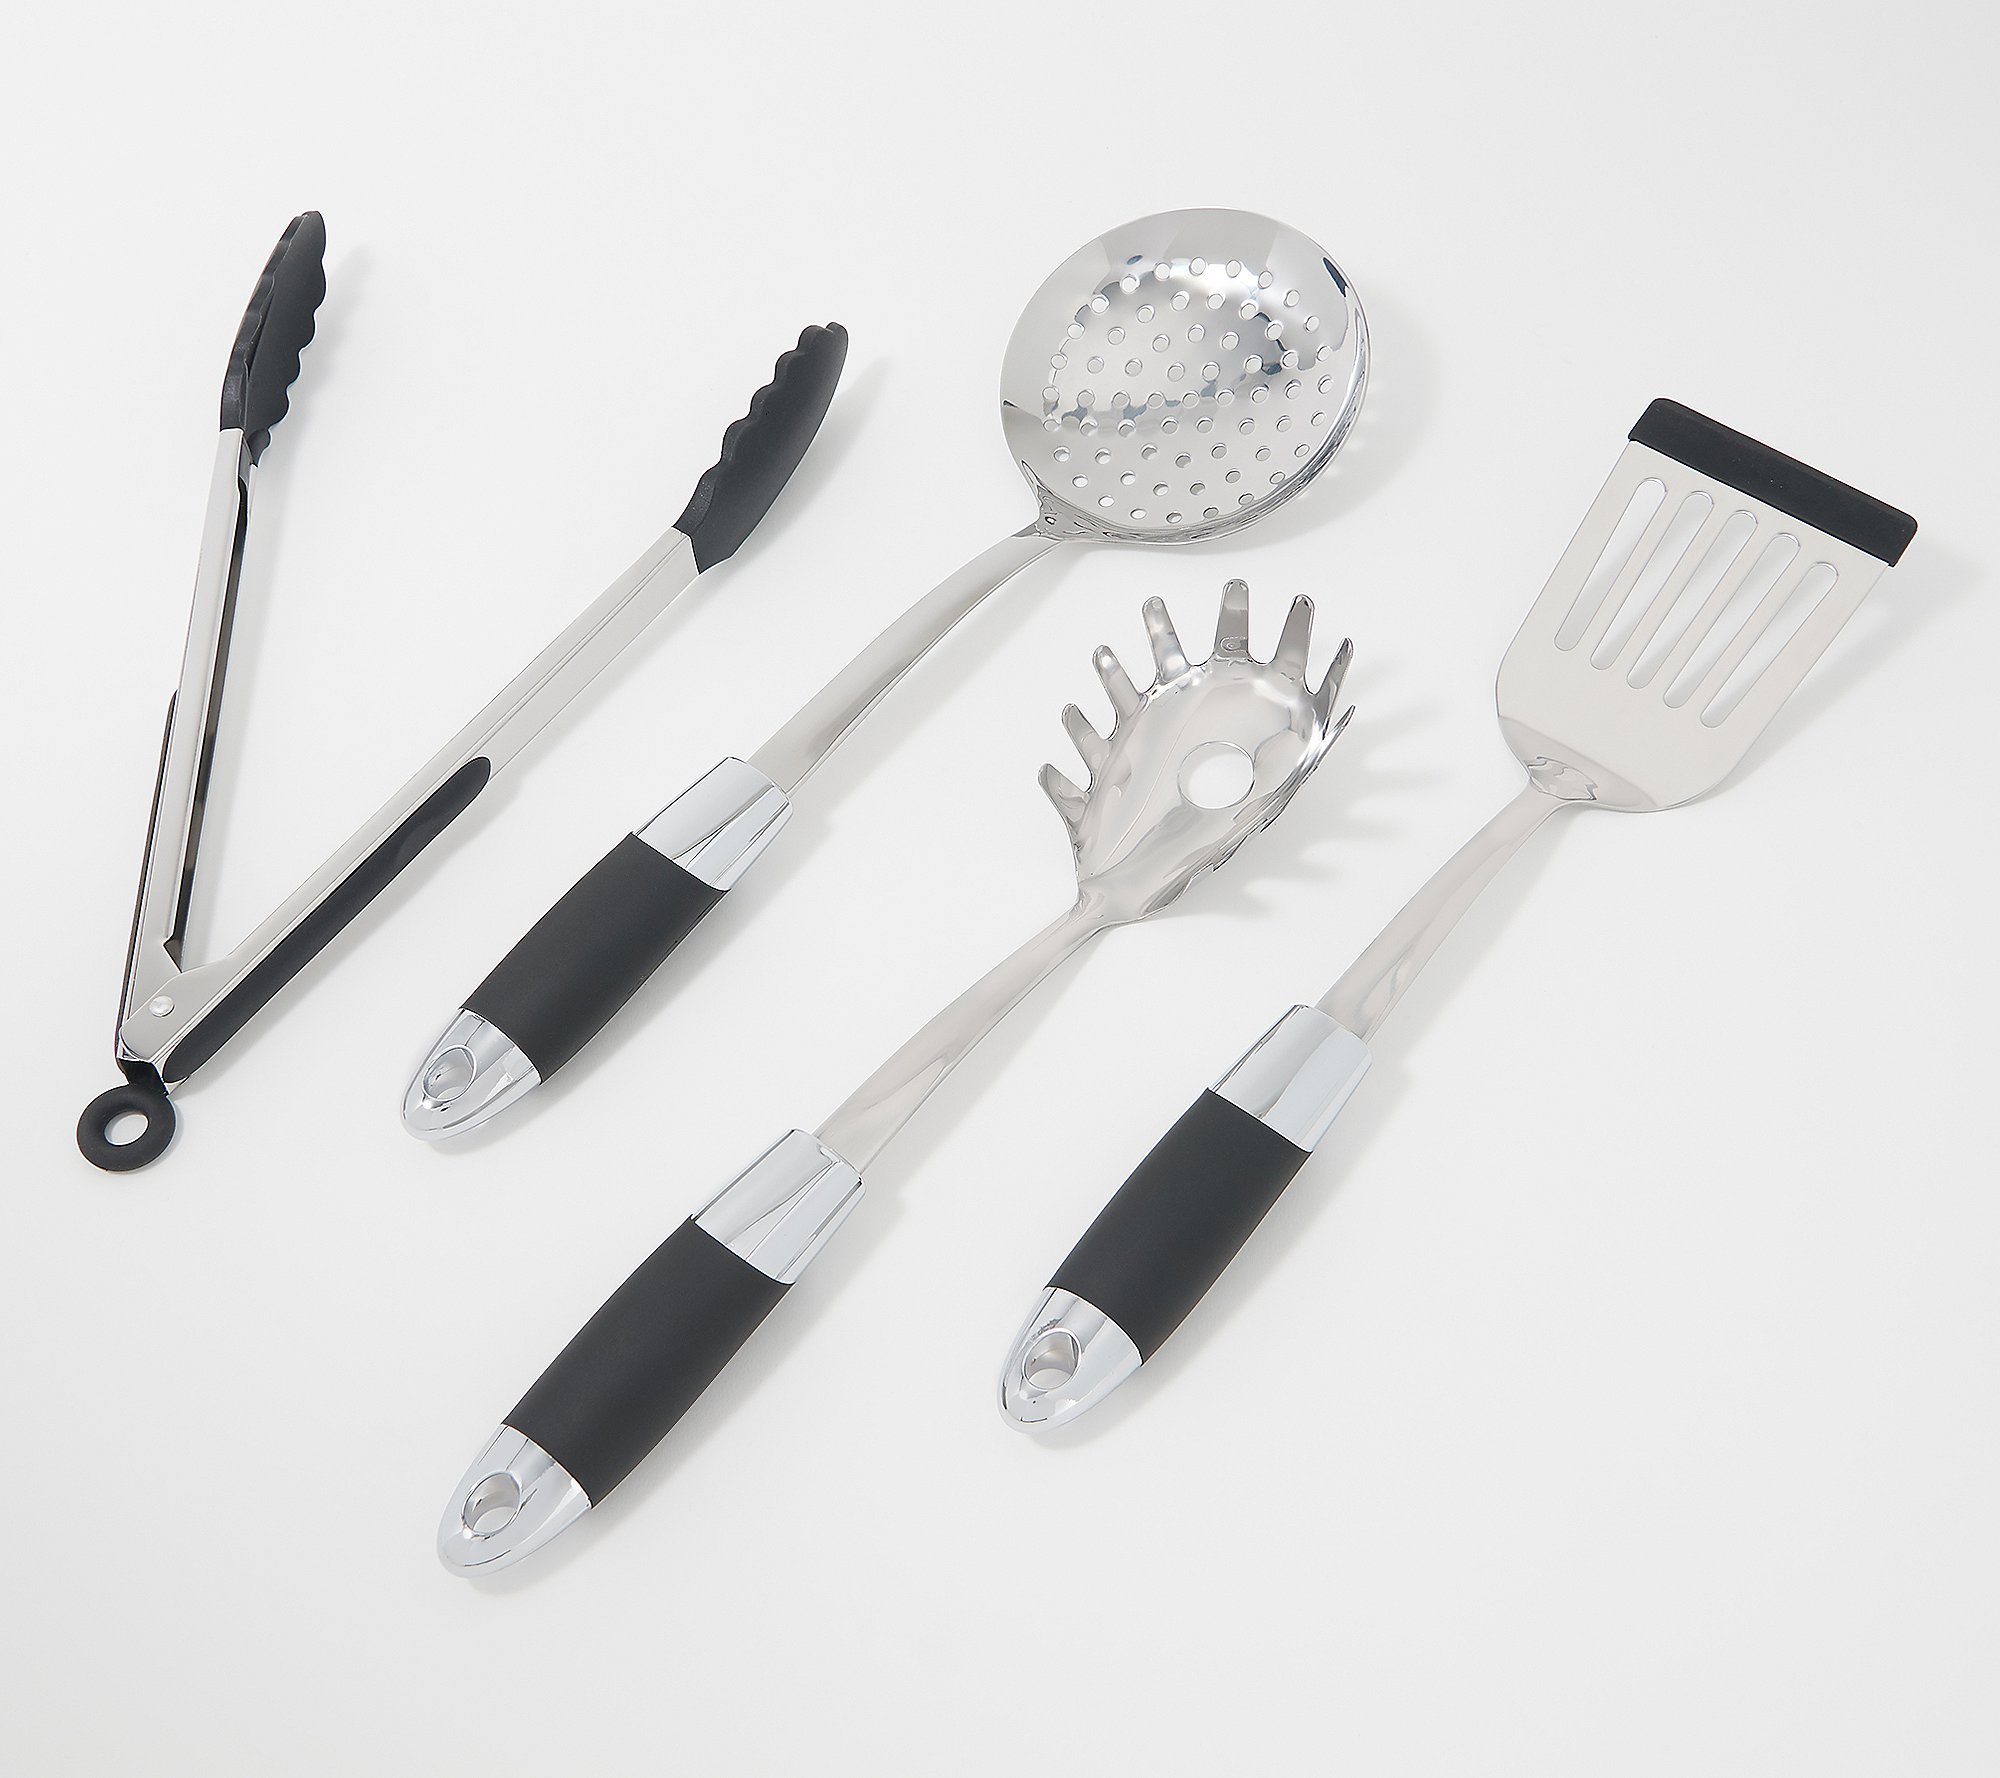 Set Of 4 Specialty Stainless Steel Kitchen Utensil Set Qvc Com